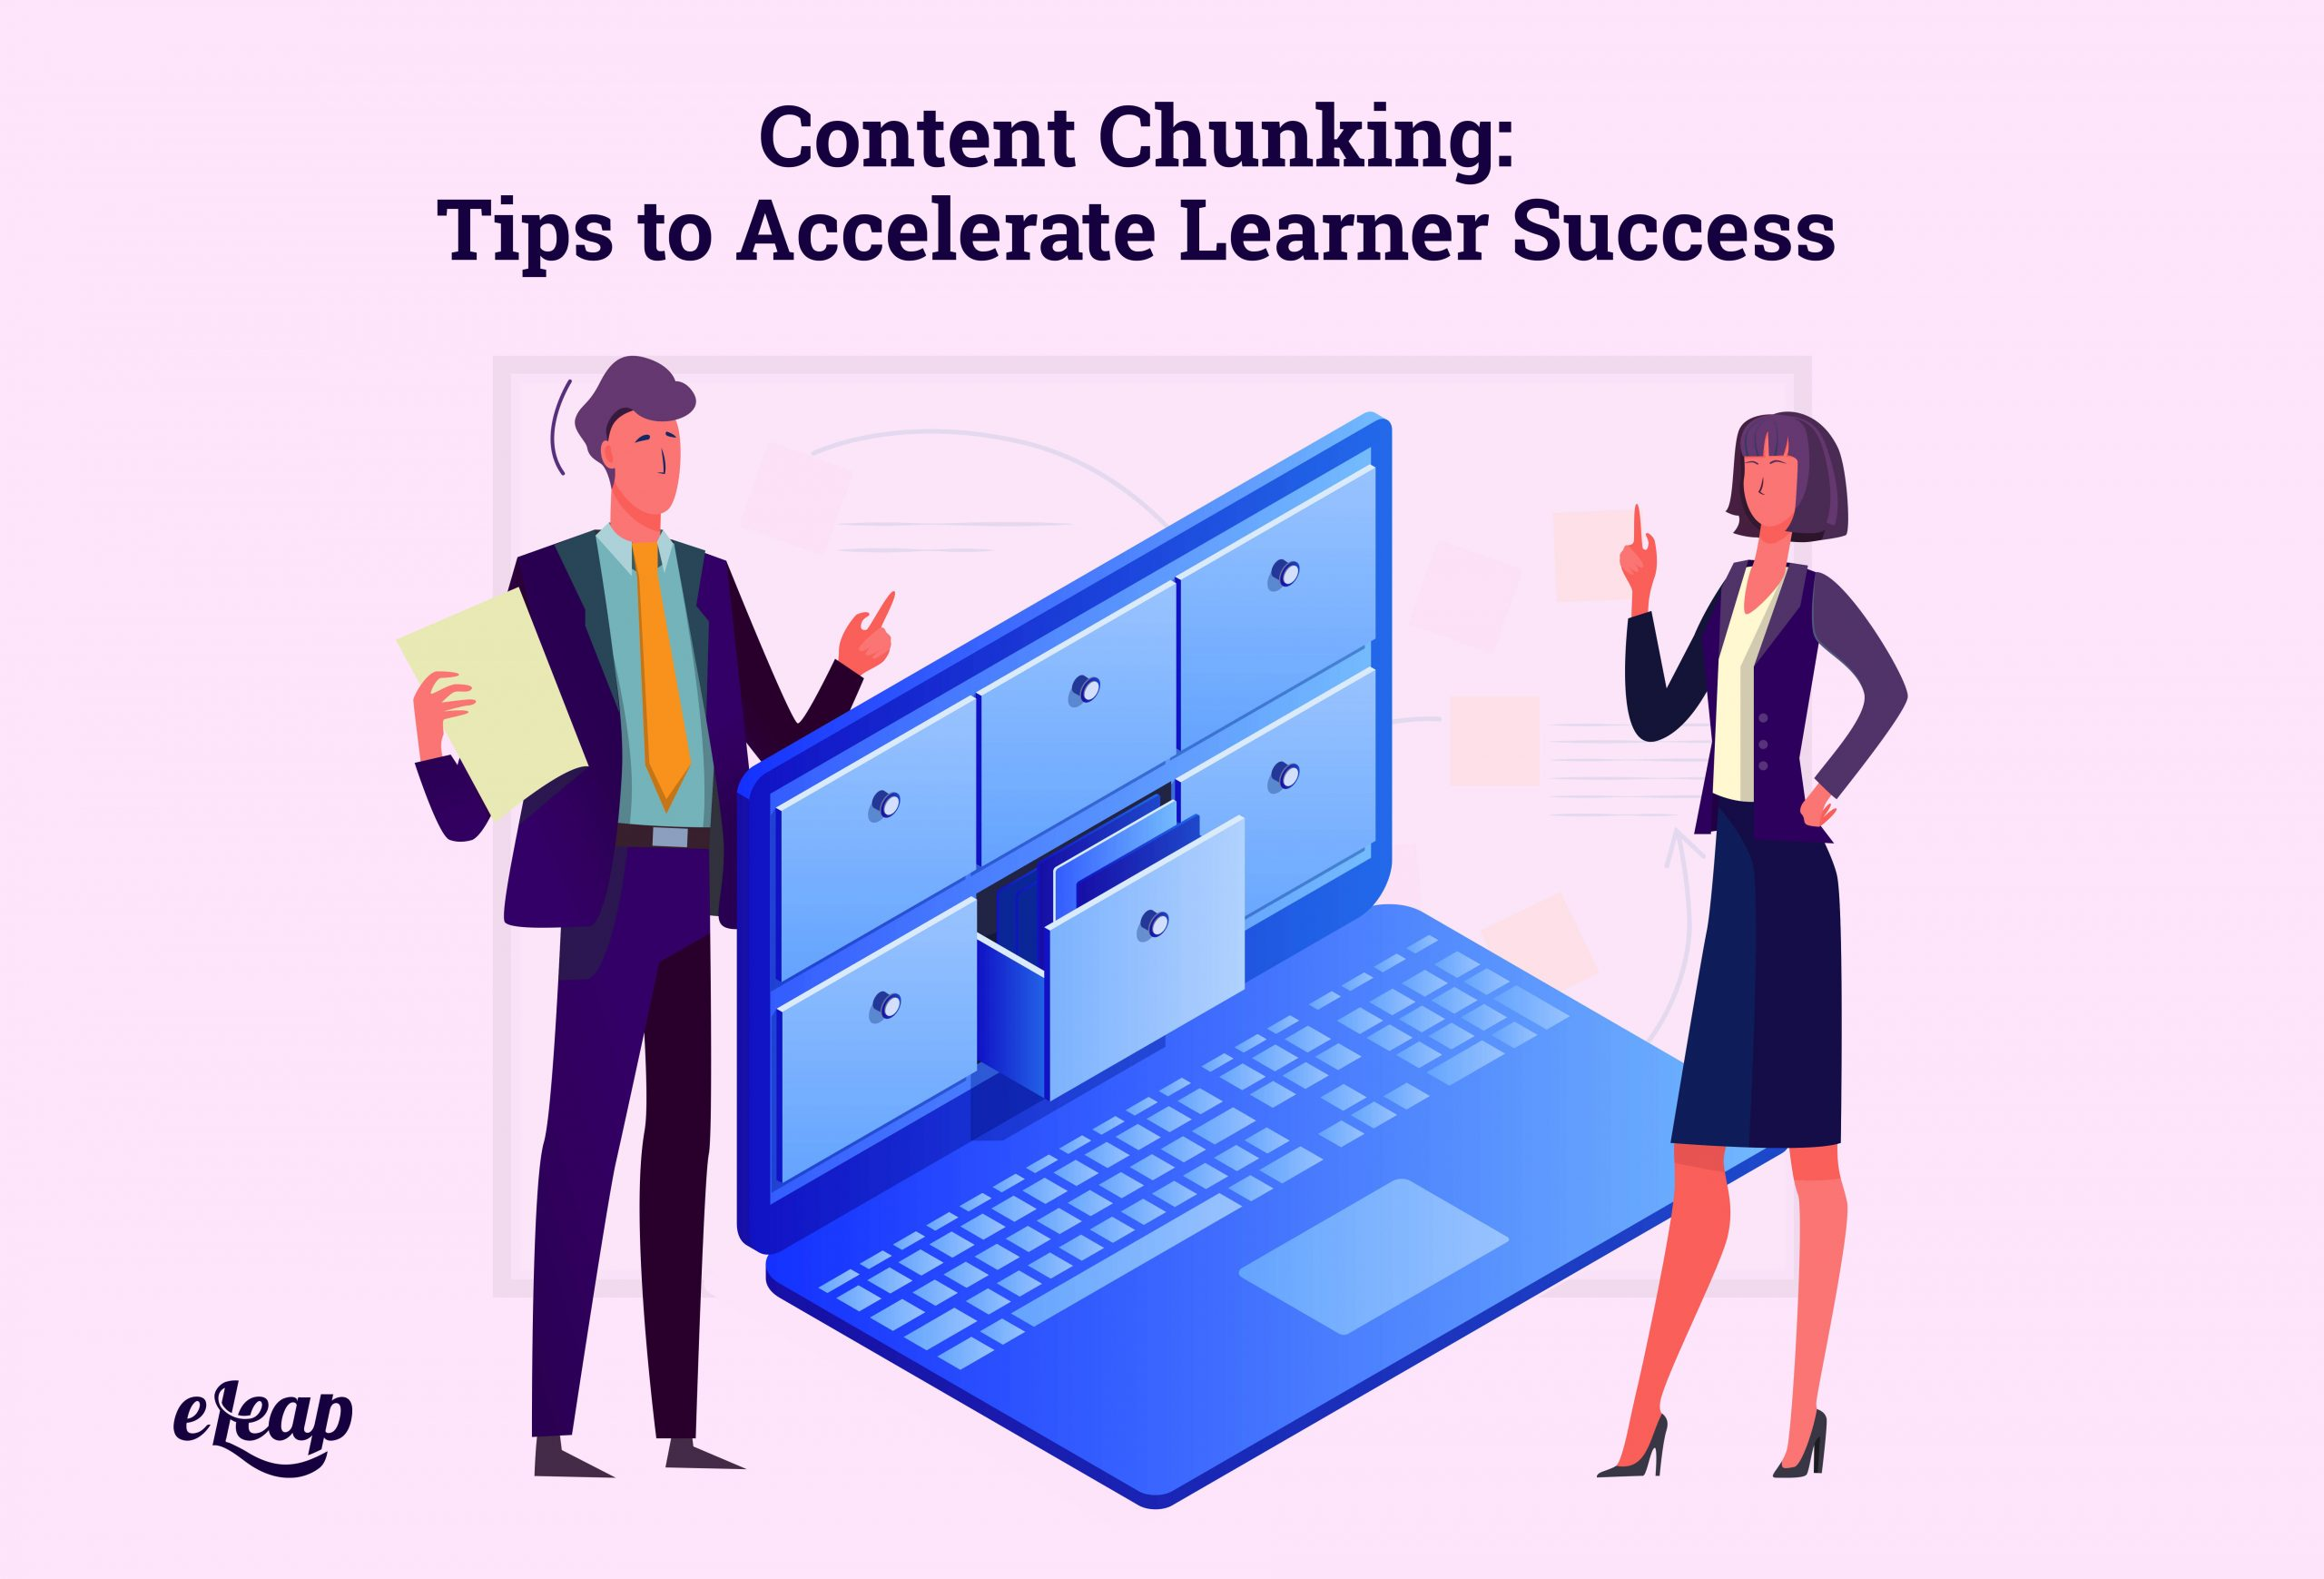 Content Chunking: Tips to Accelerate Learner Success